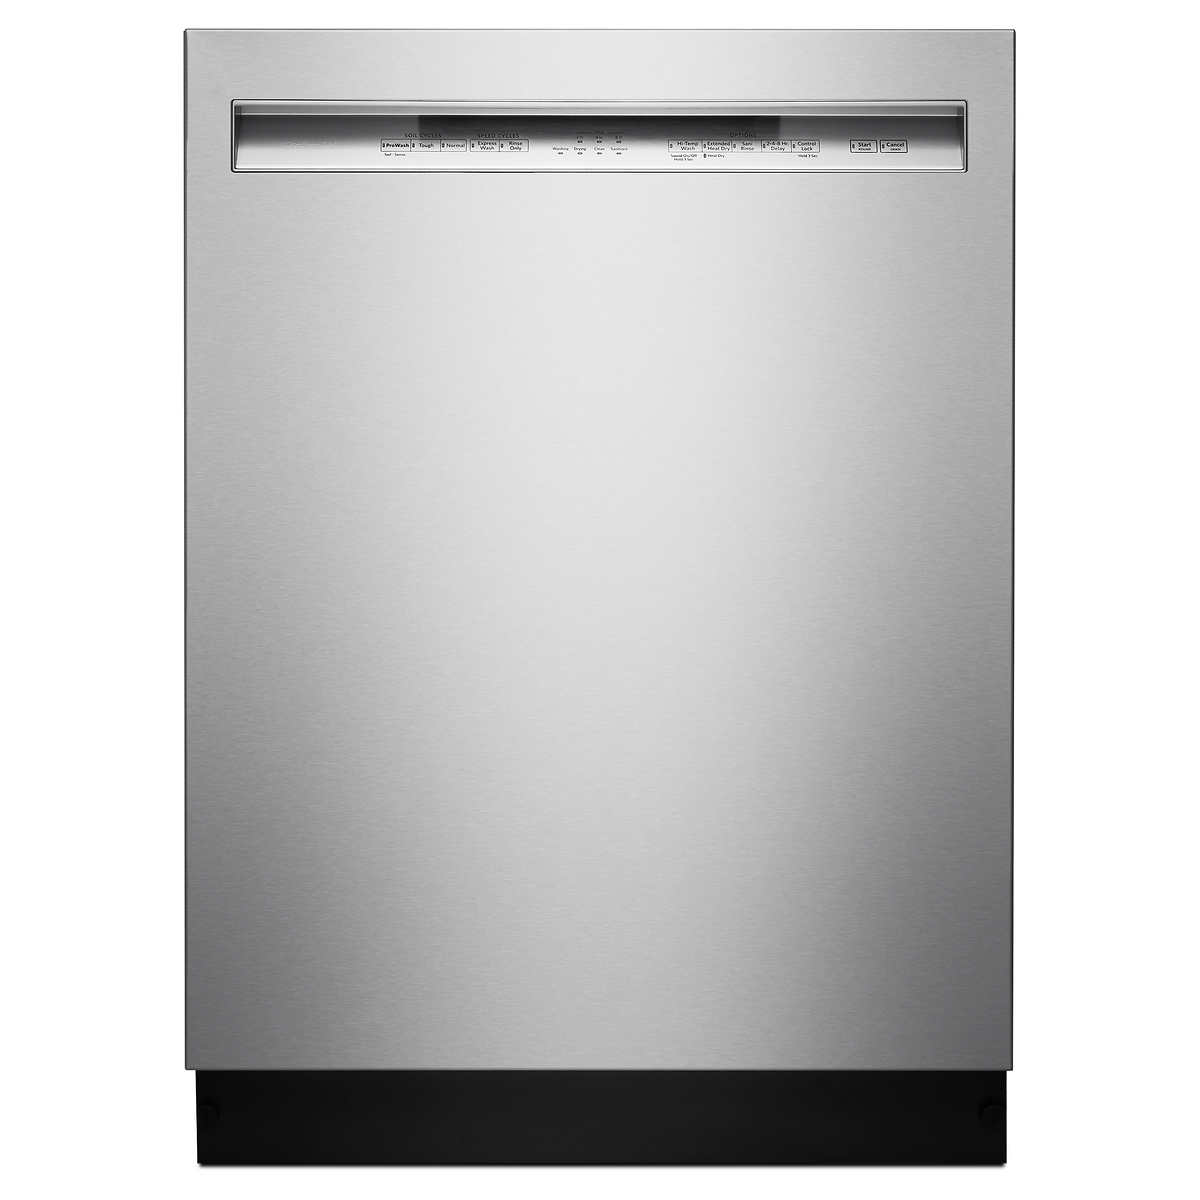 Kitchenaid Front Control Dishwasher With Prowash Cycle Durable Stainless Steel Interior